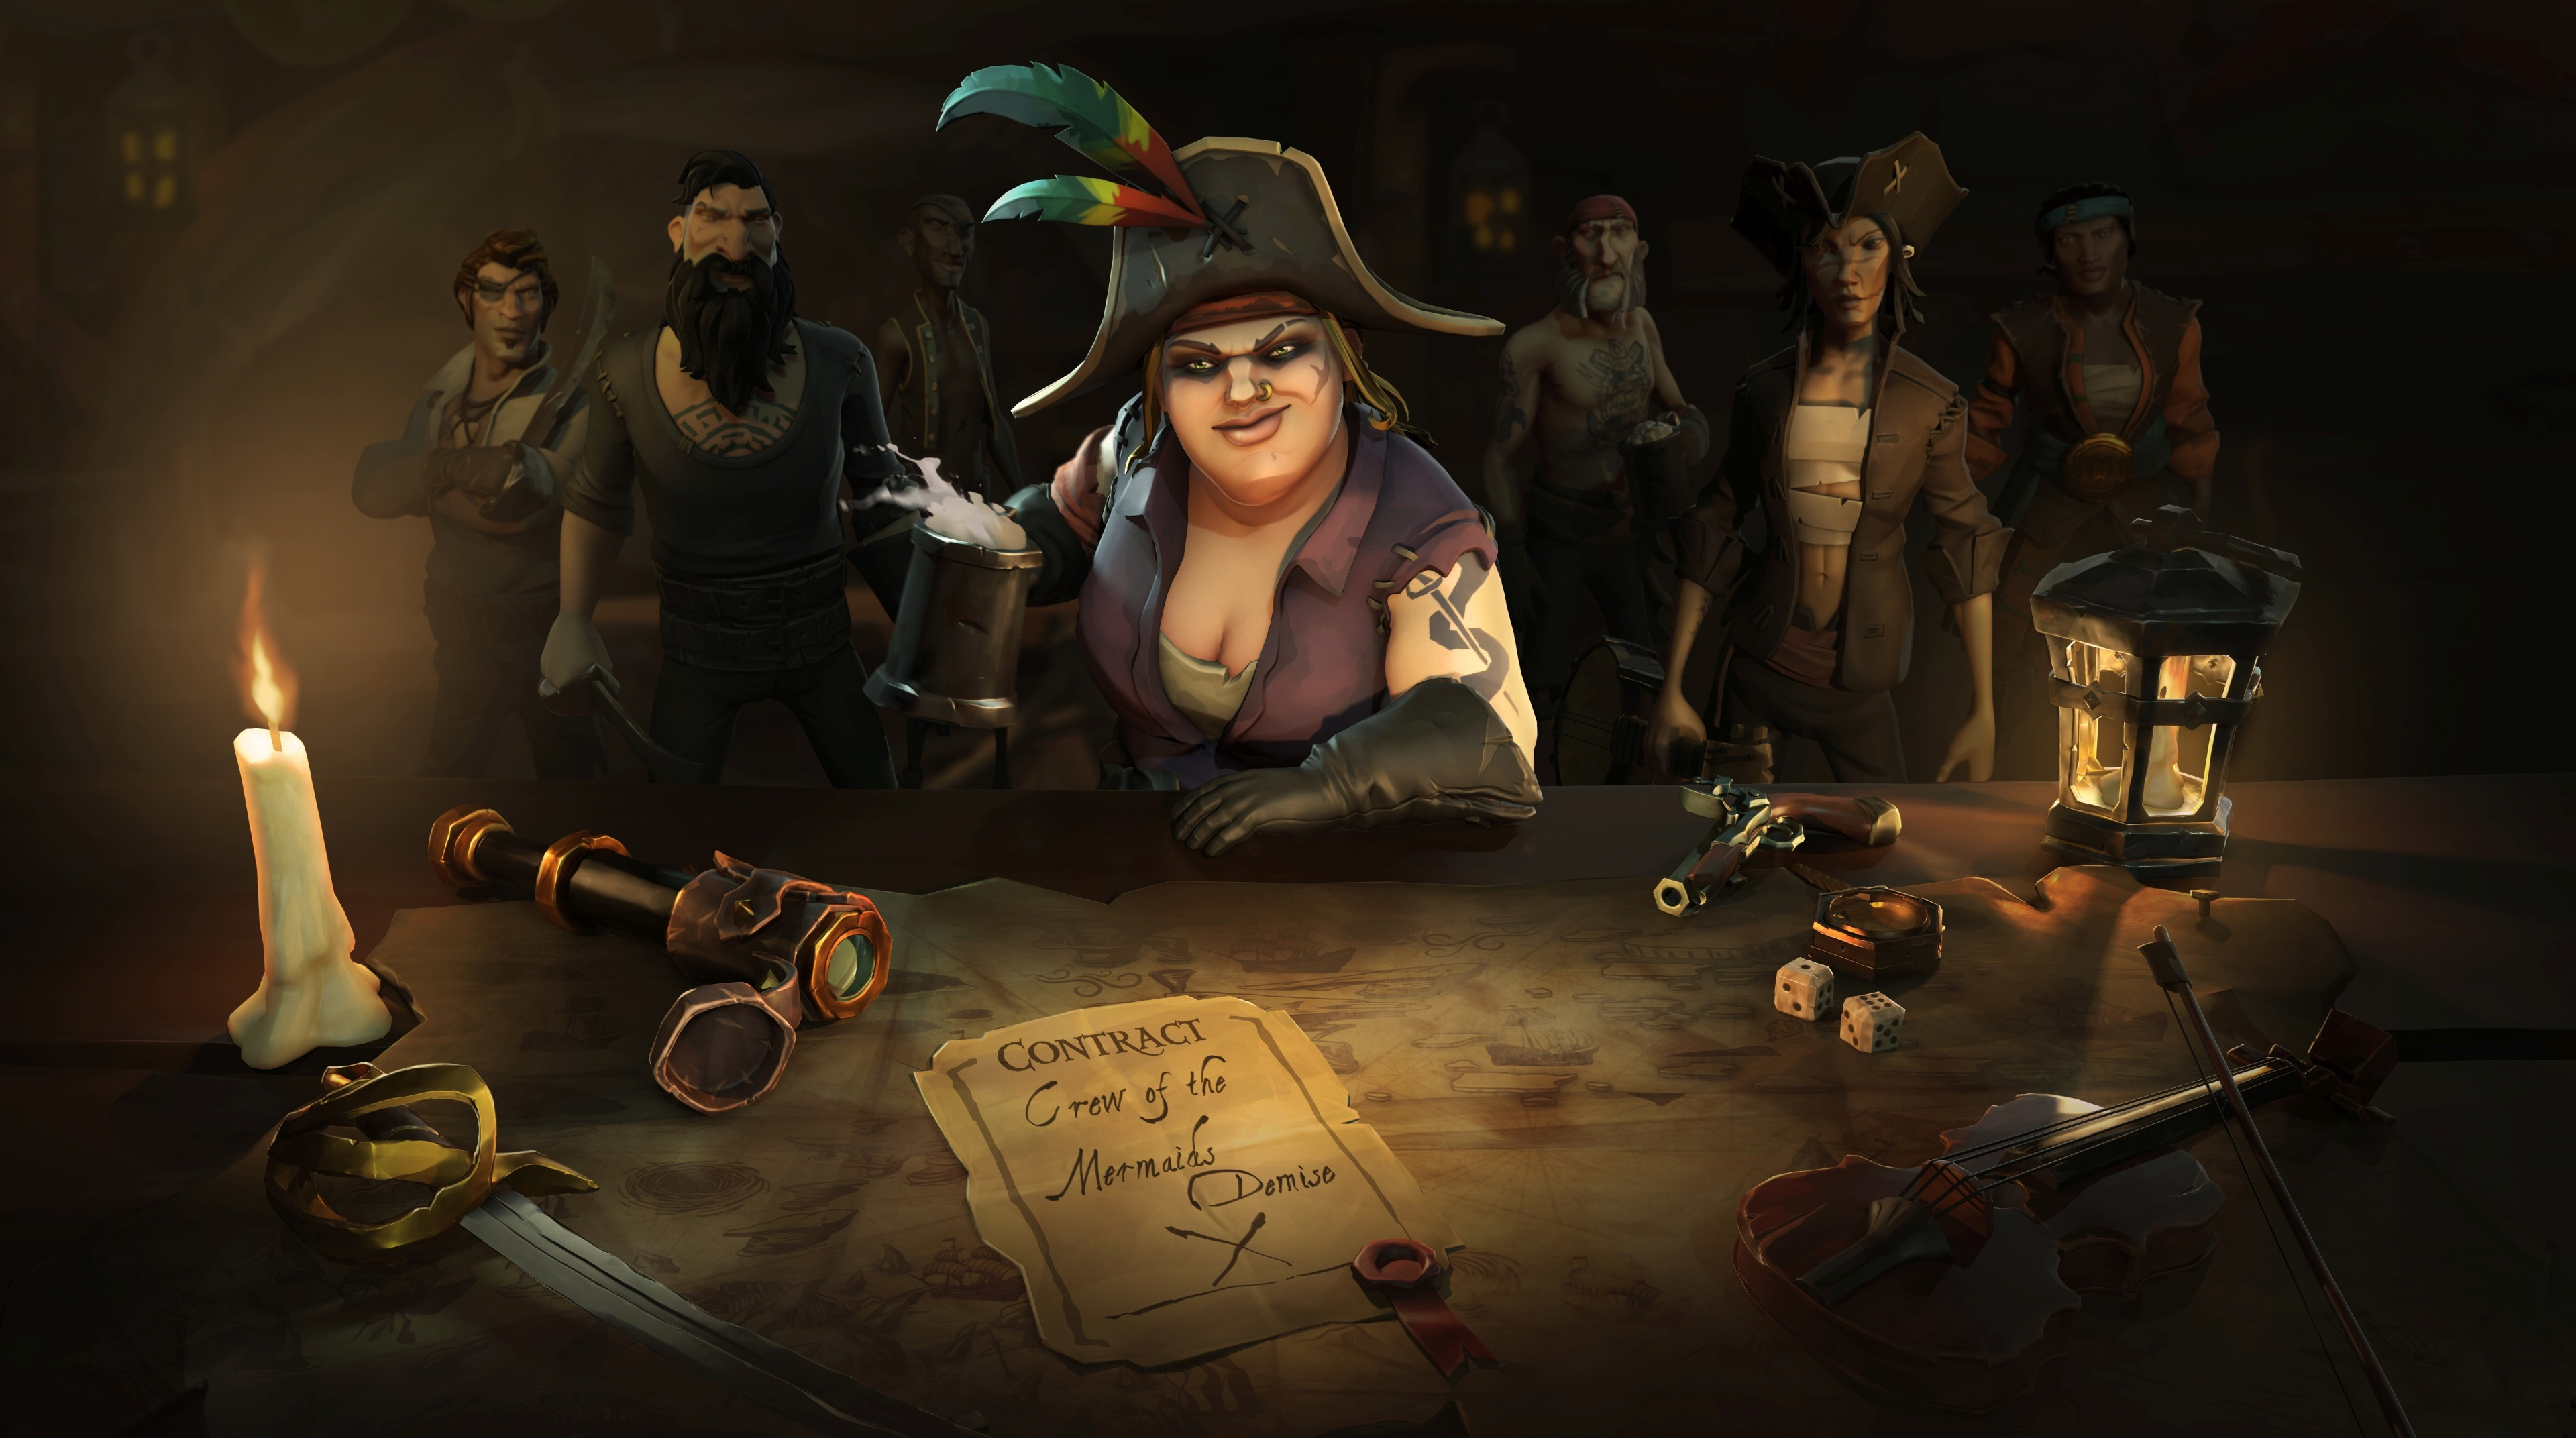 x sea of thieves k new wallpaper in